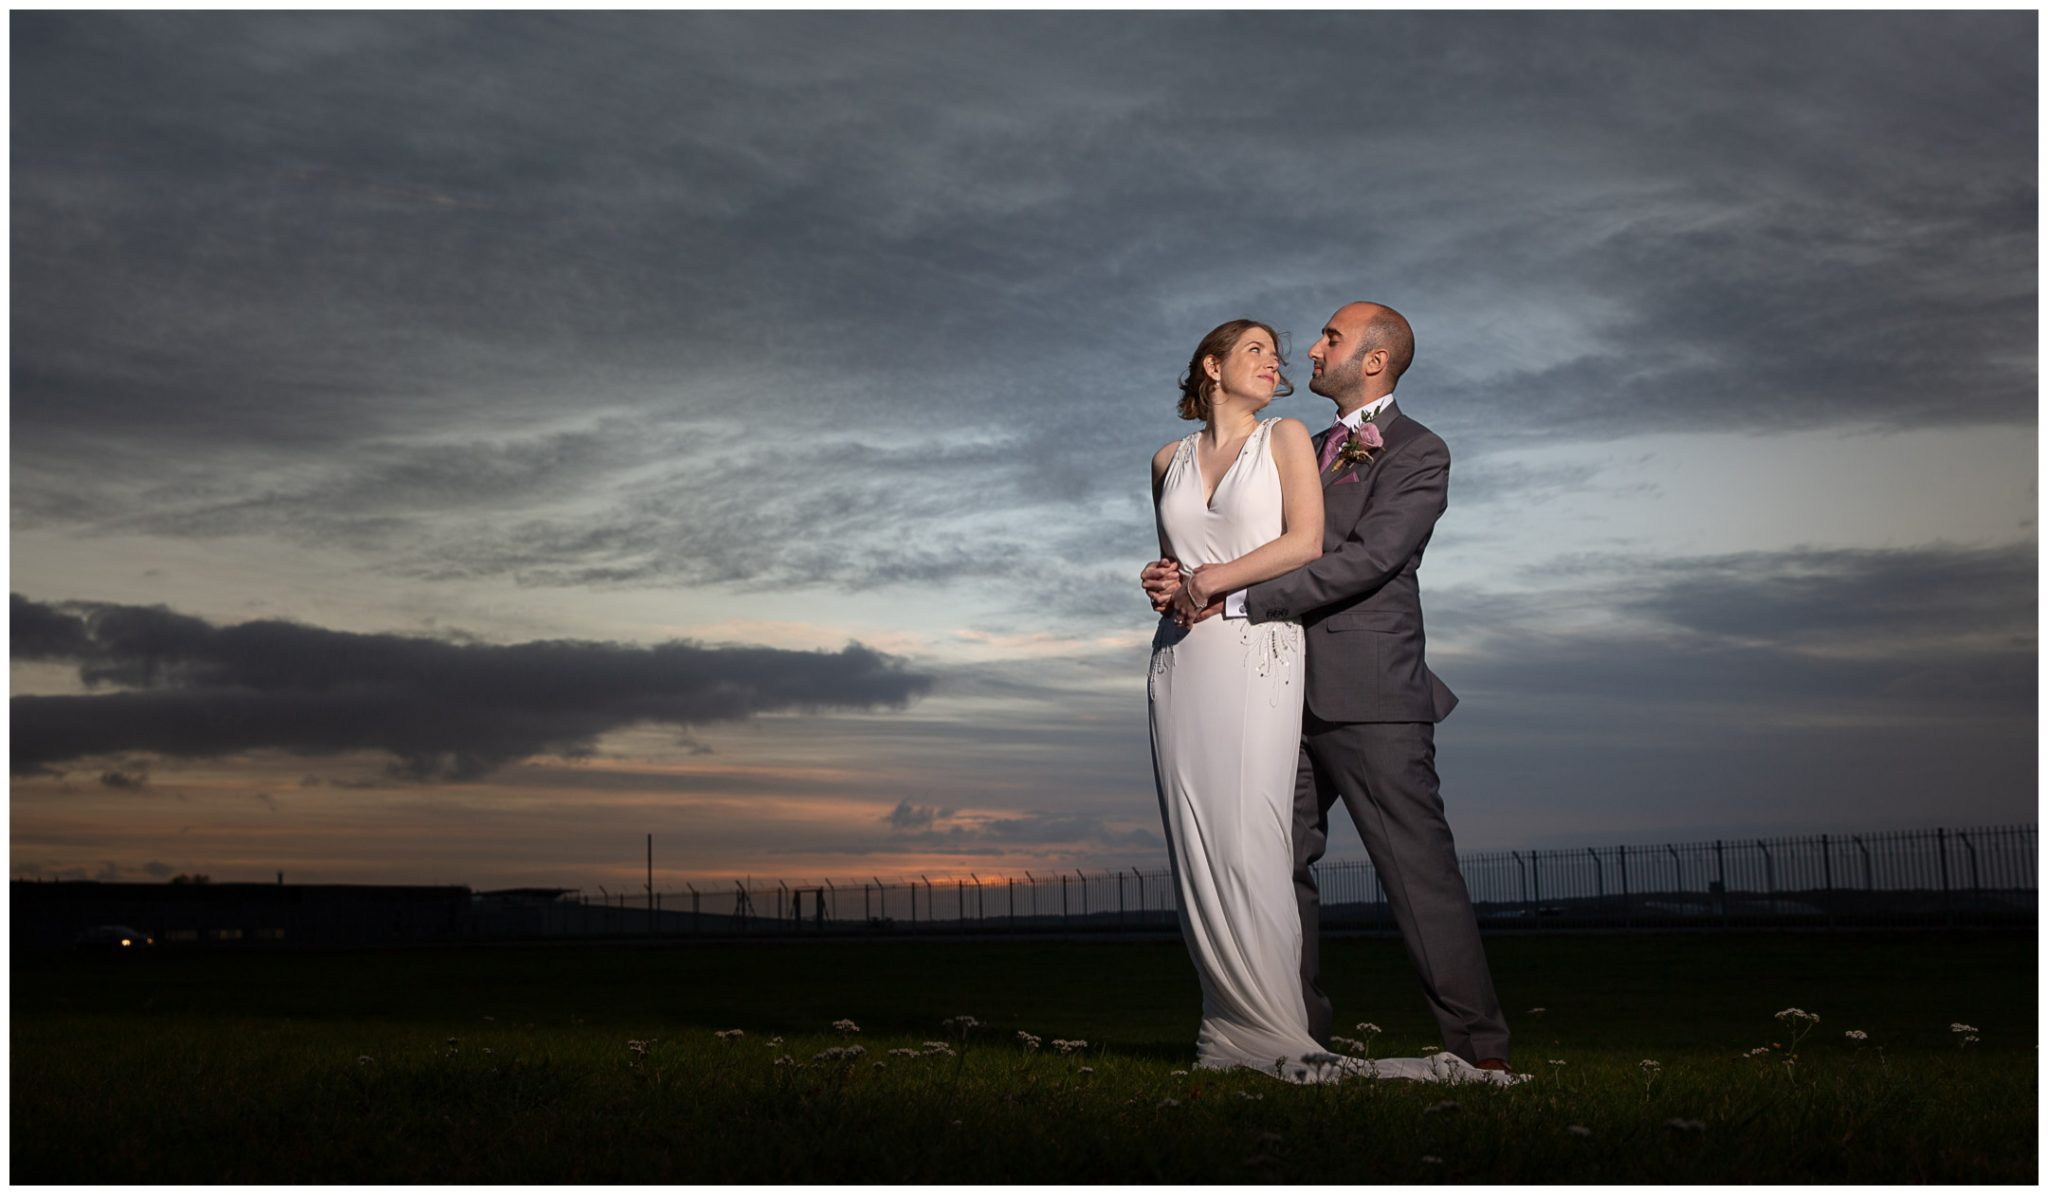 Dramatic lighting couple portrait at sunset